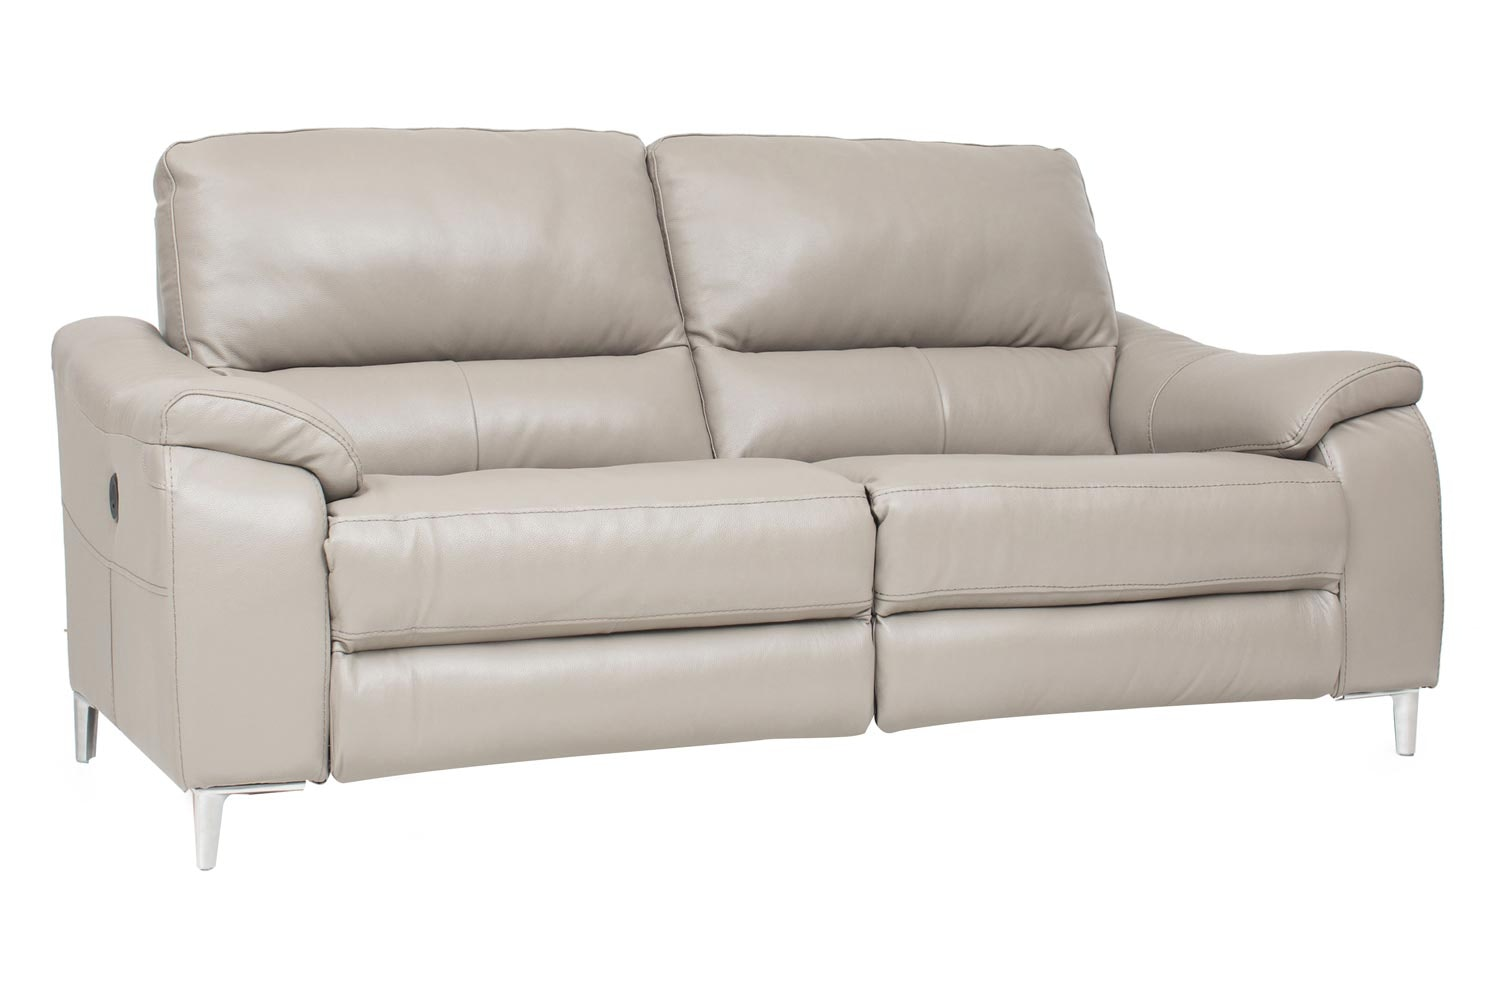 Yvezza 3 Seater Electric Recliner Sofa| Grey ...